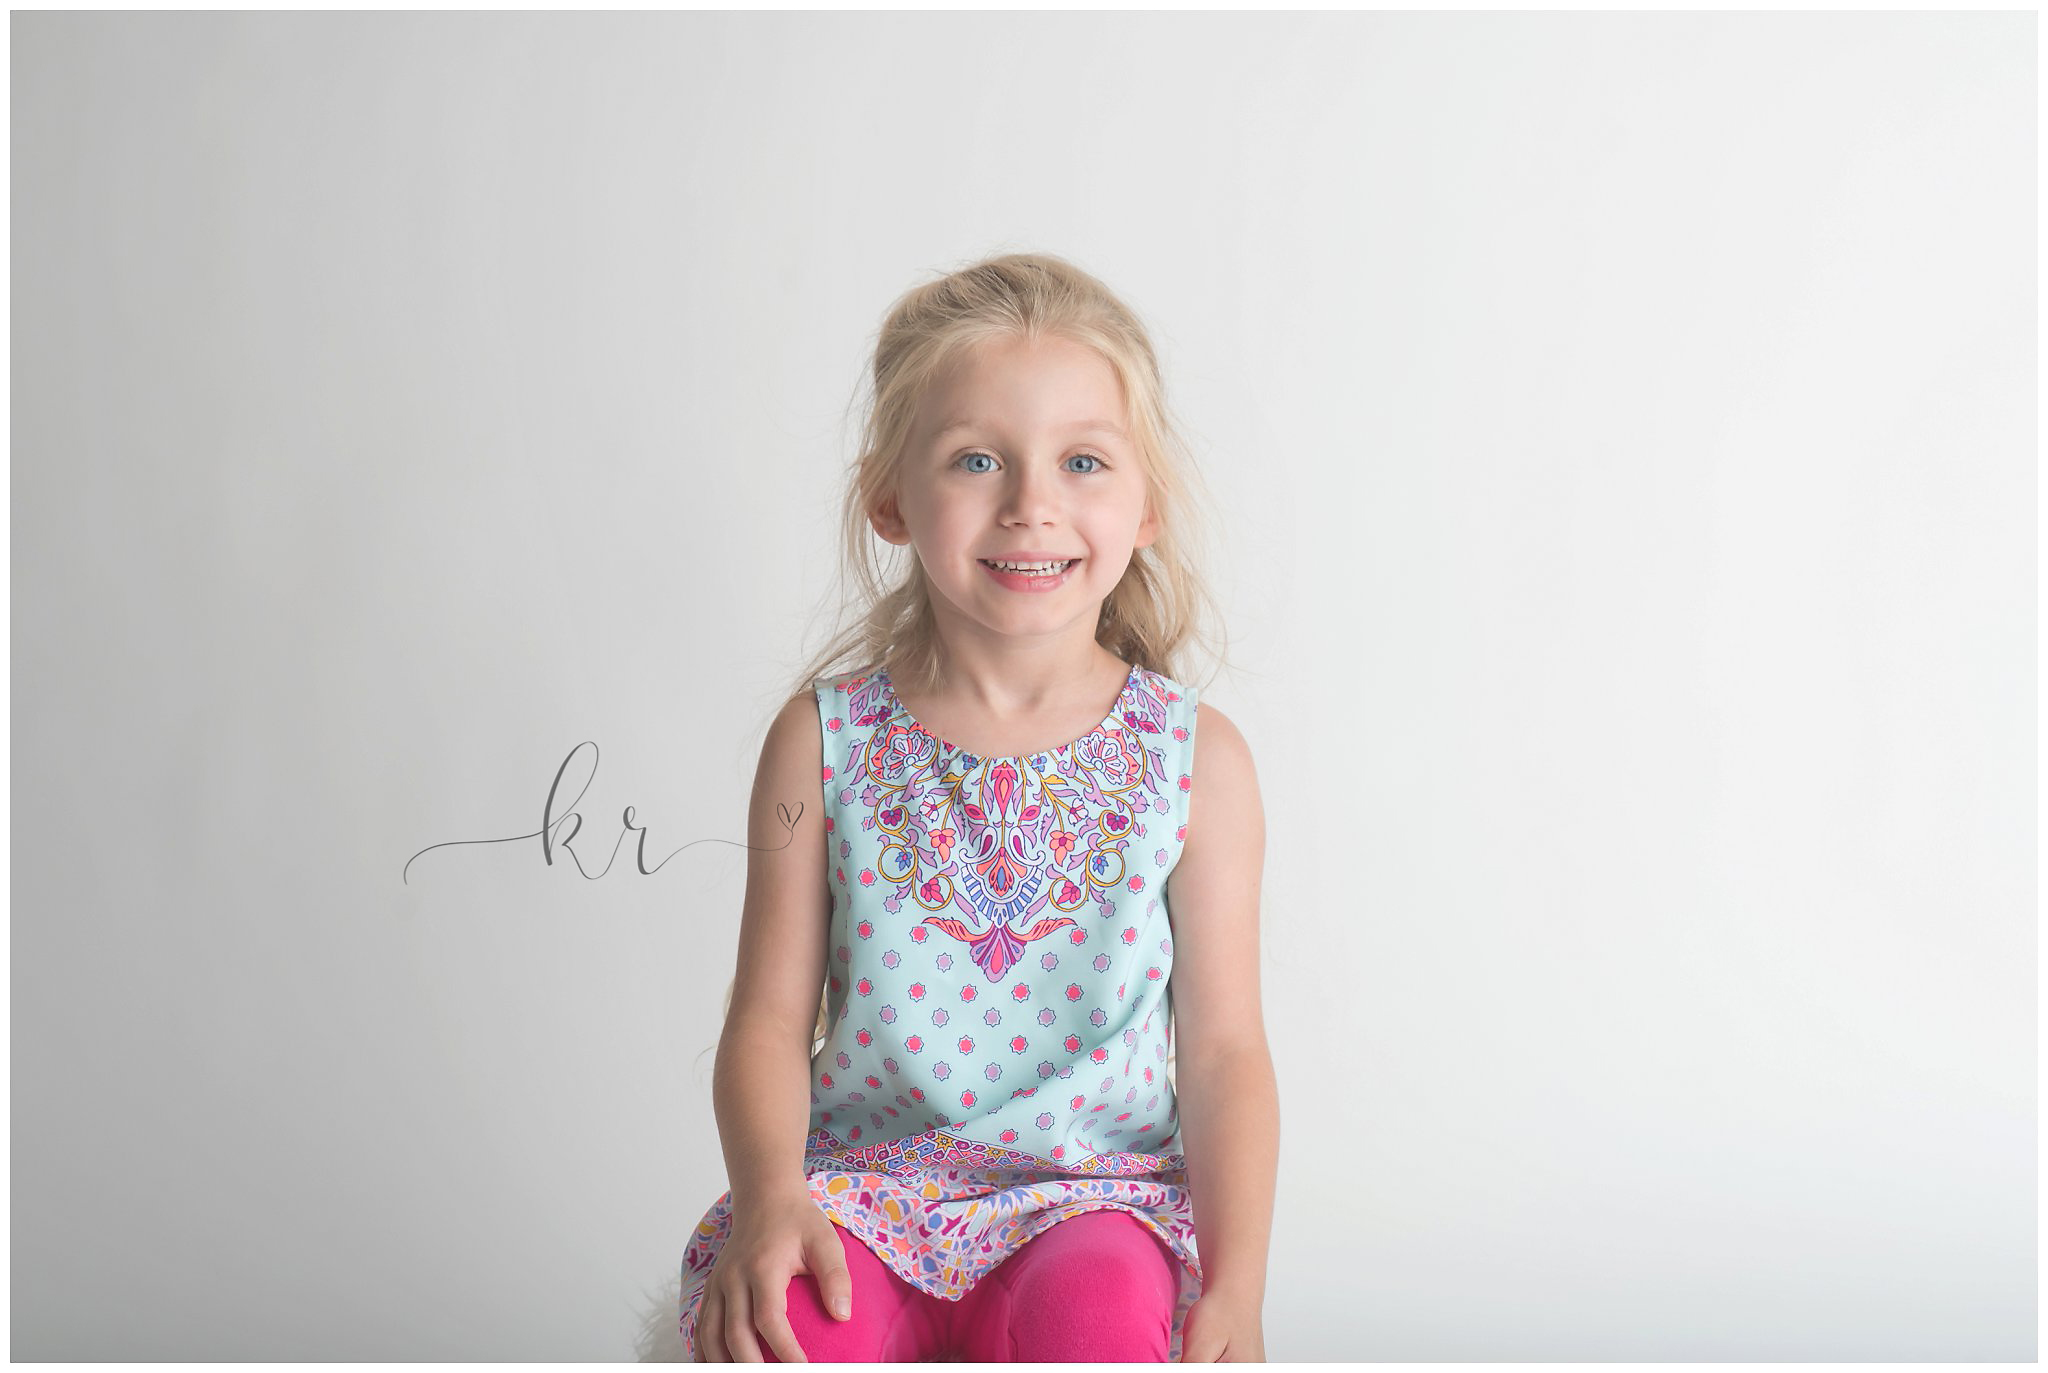 Kathy Rogers Photography_Beautifully Different_Children Photographer in Amherst_Little girl_Autism_ADHD